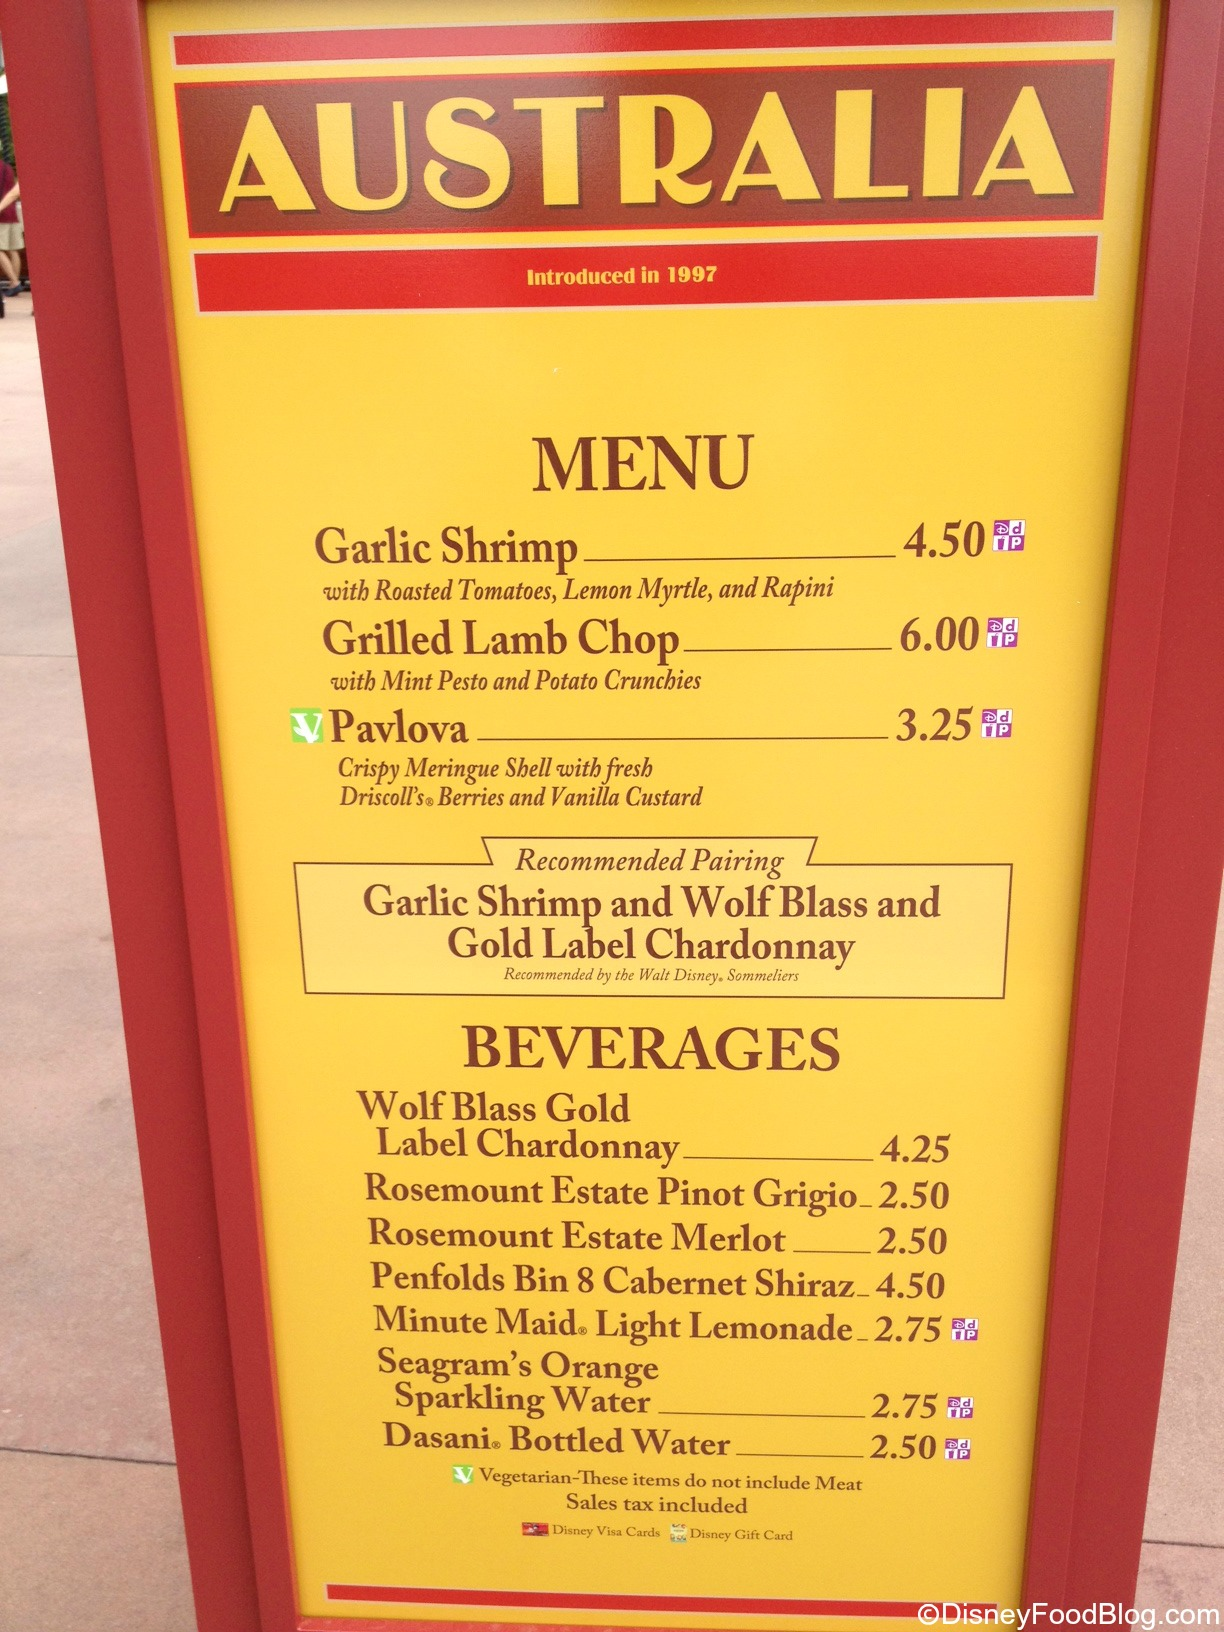 Australian Cuisine Menu Of Australia 2013 Epcot Food And Wine Festival The Disney